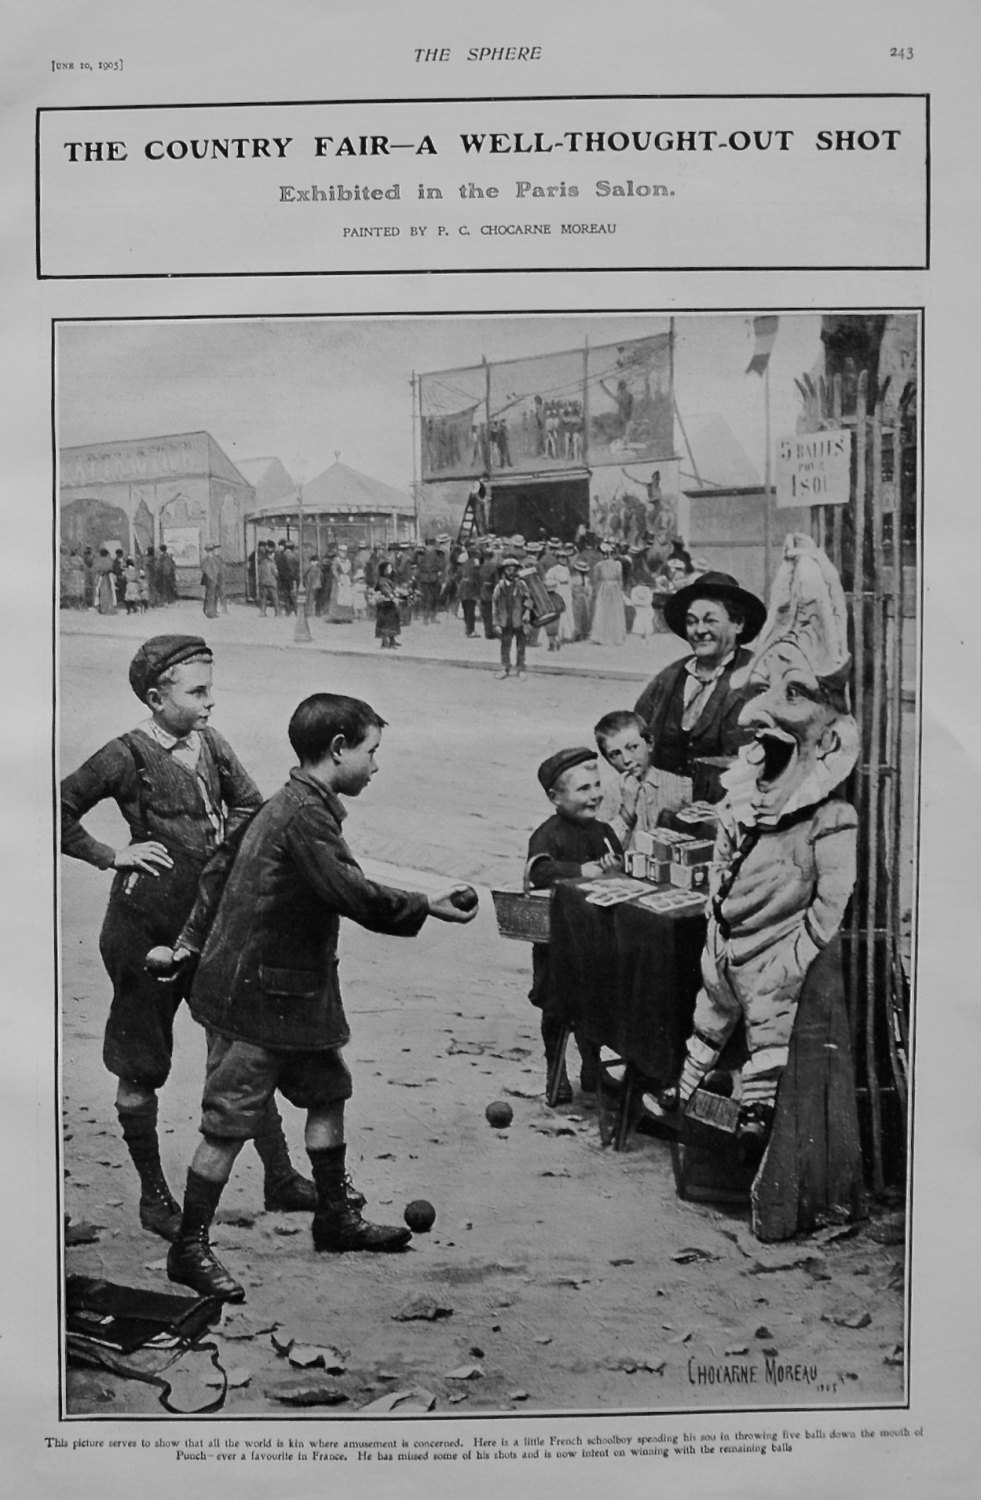 The Country Fair - A Well-Thought-Out Shot. 1905